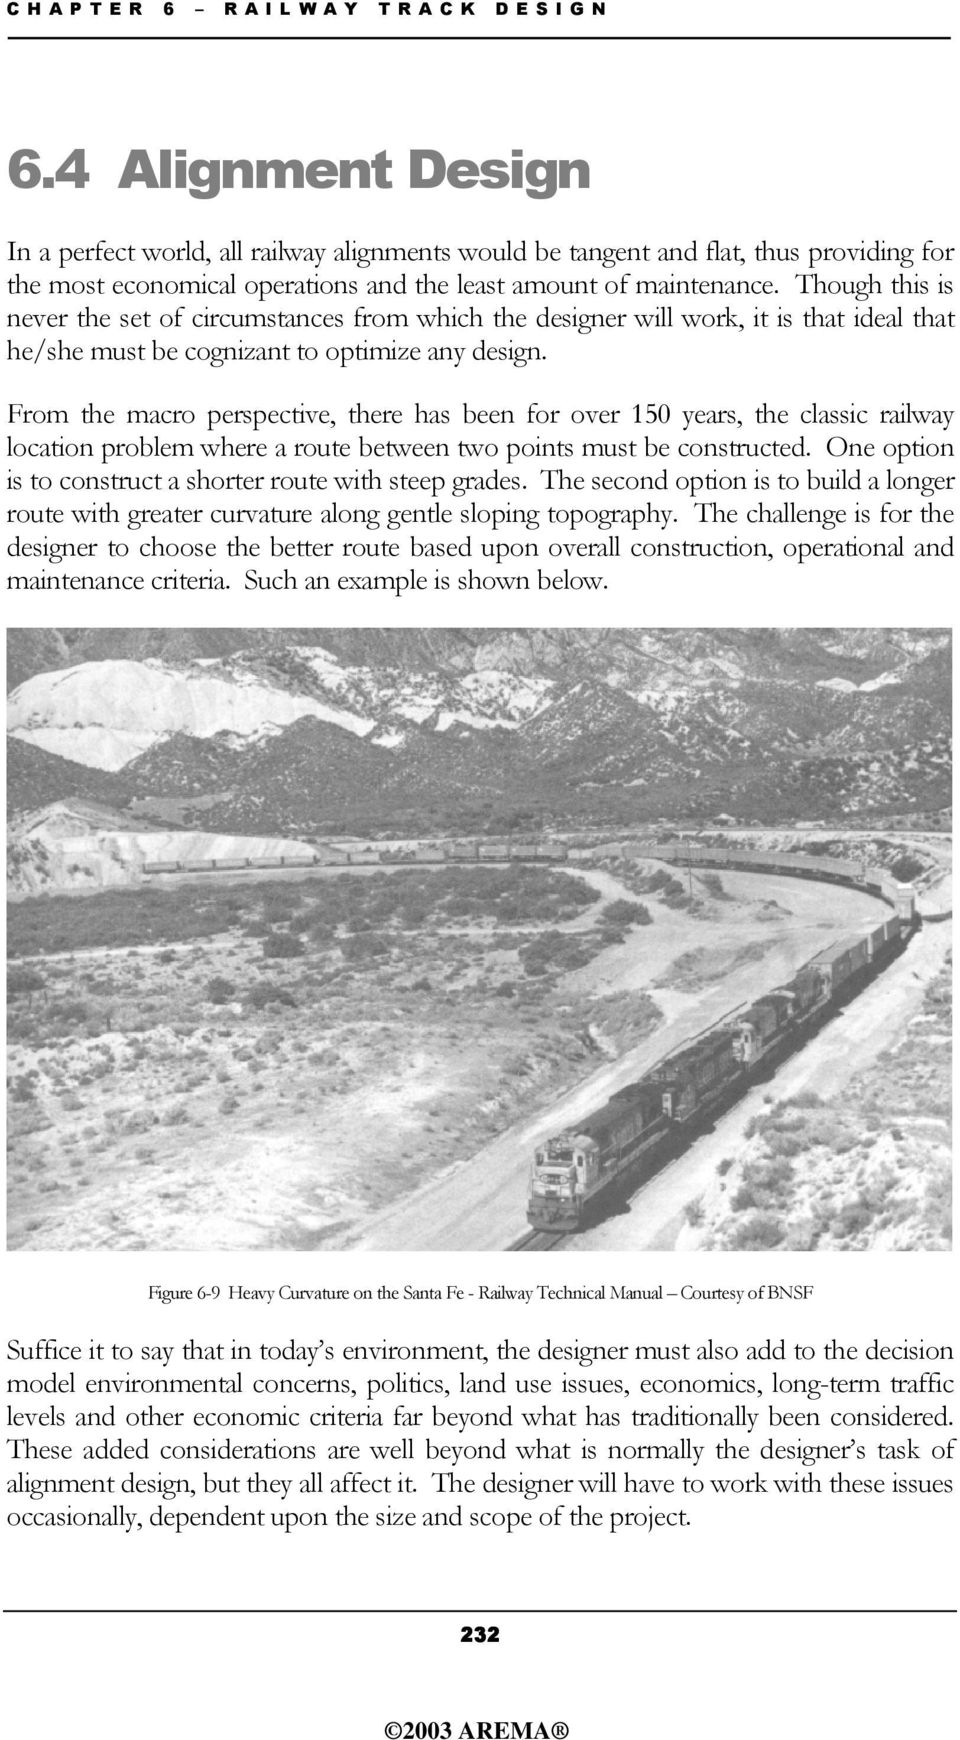 From the macro perspective, there has been for over 150 years, the classic railway location problem where a route between two points must be constructed.